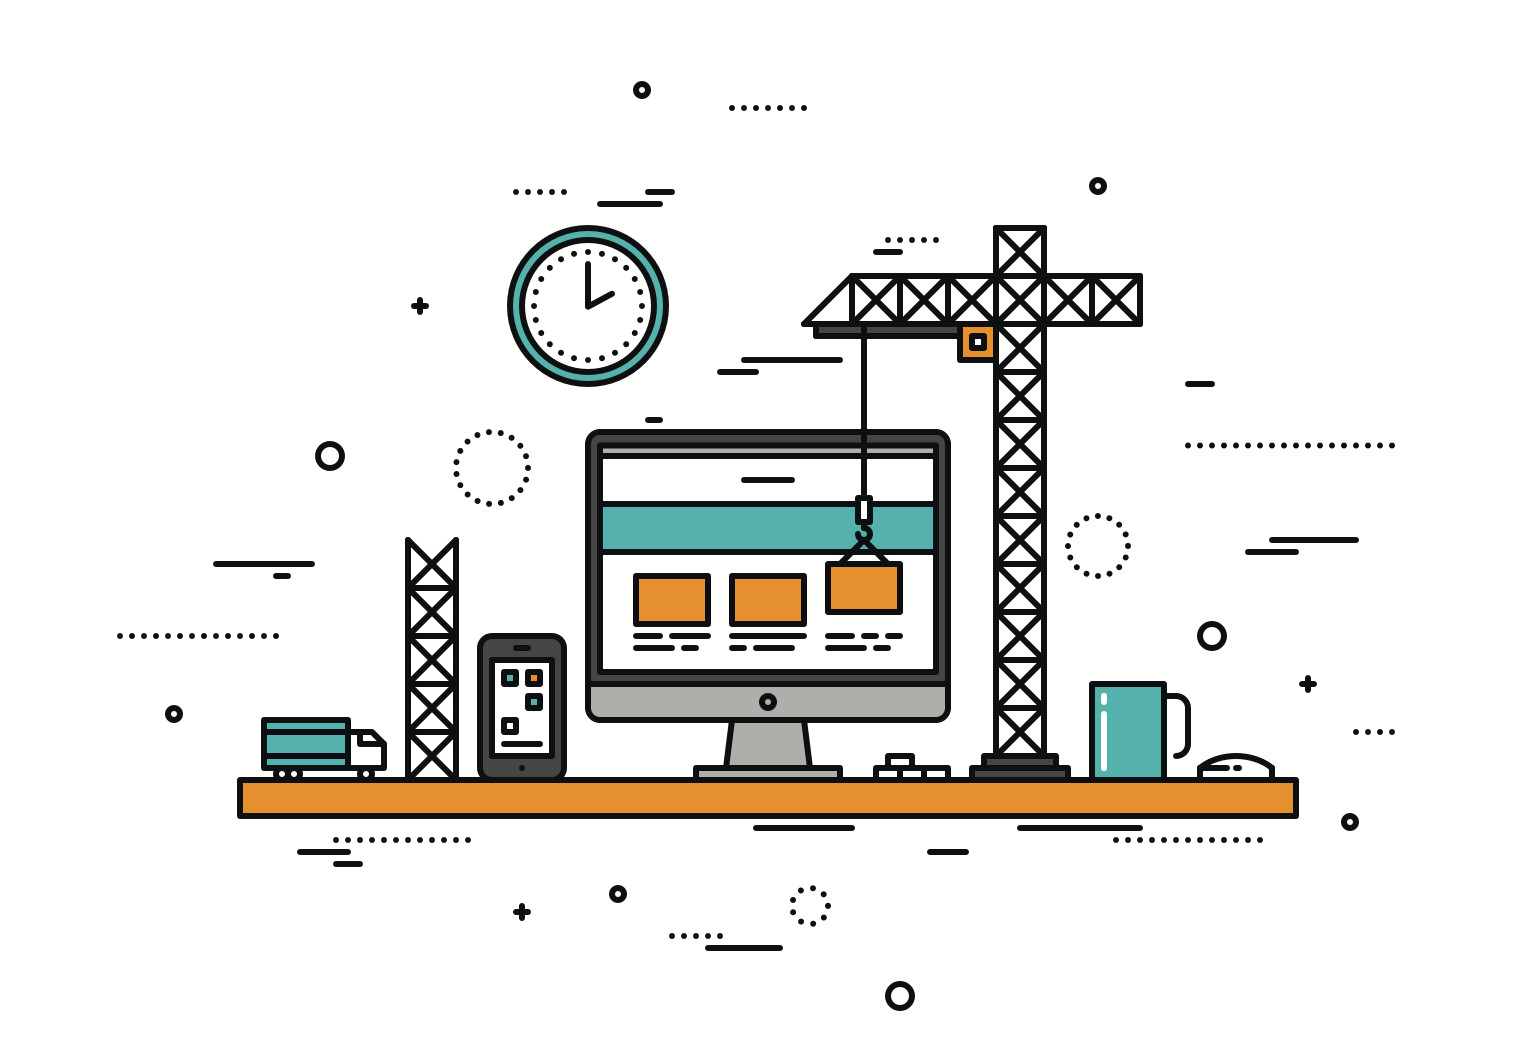 Best ideas about DIY Website Design . Save or Pin 11 DIY Web Design Mistakes And How To Avoid Them Now.